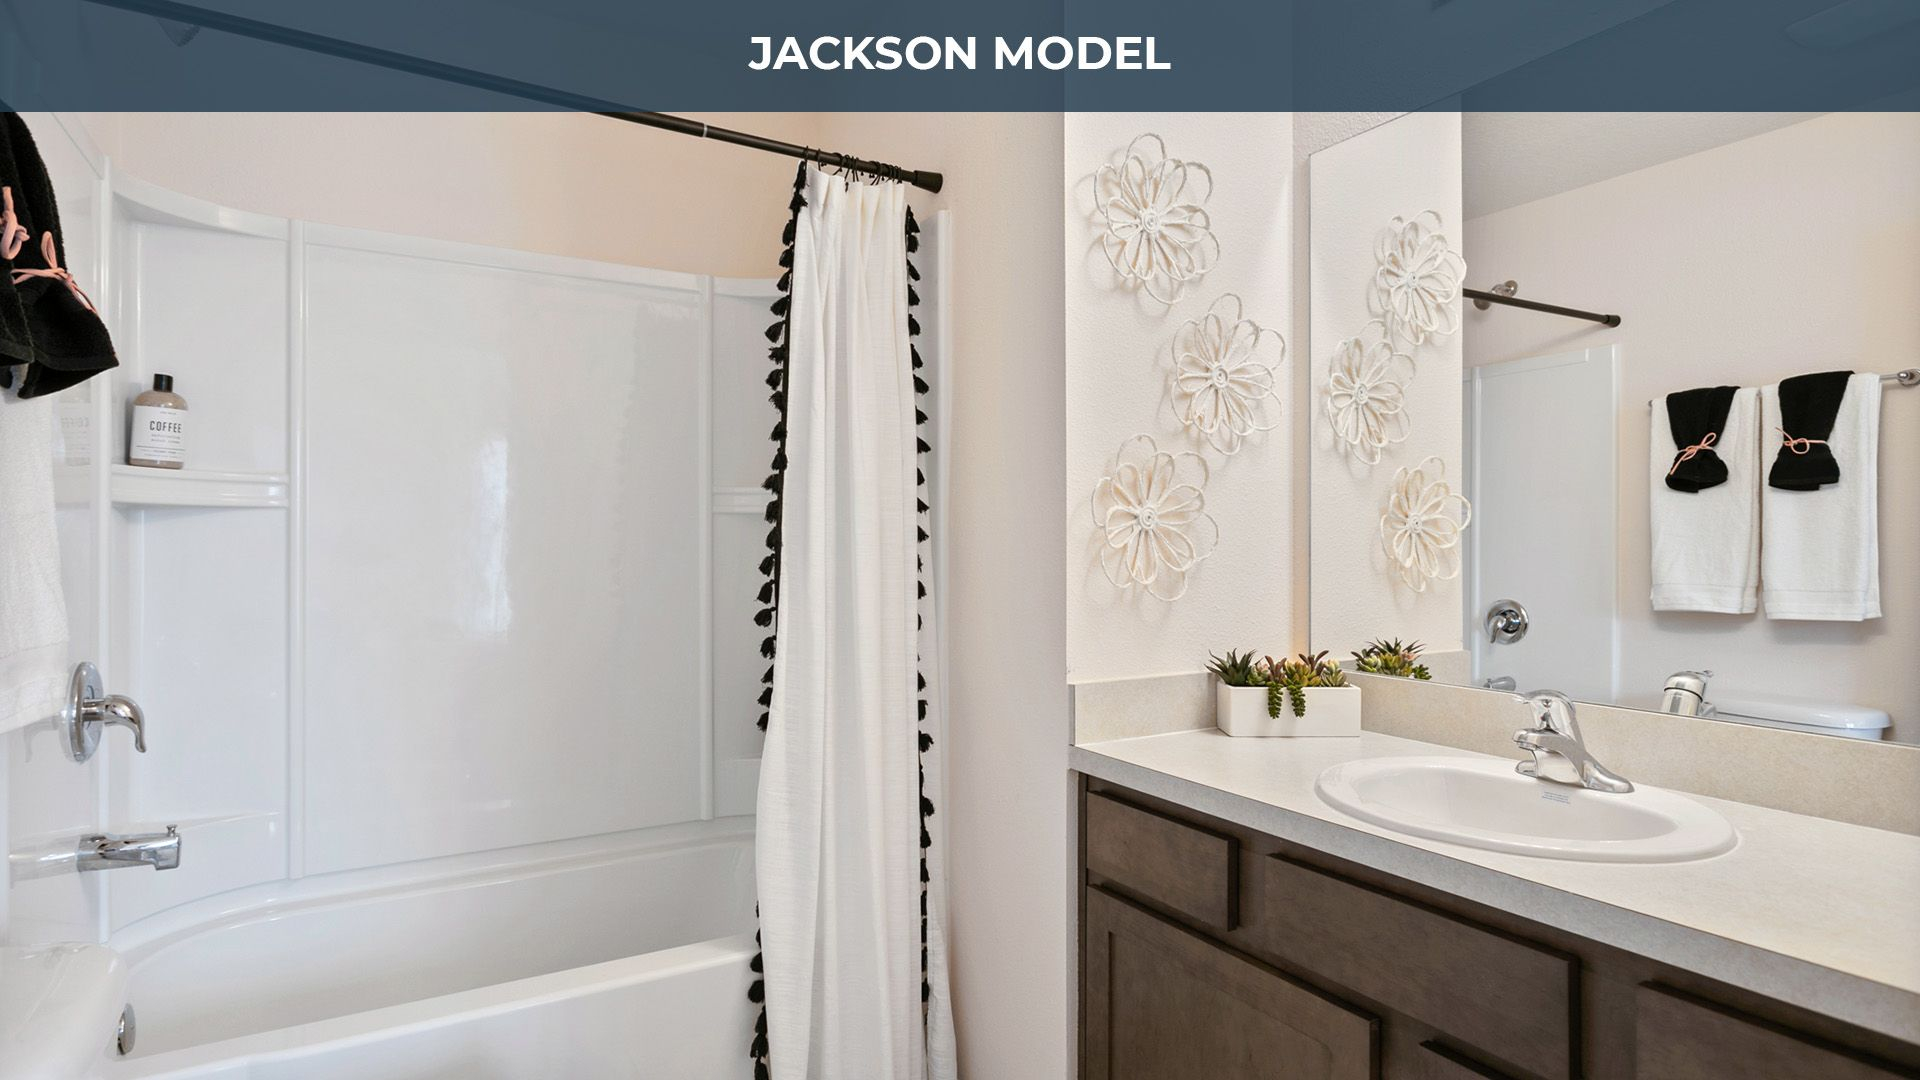 Bathroom featured in the Jackson By D.R. Horton in Jacksonville-St. Augustine, FL